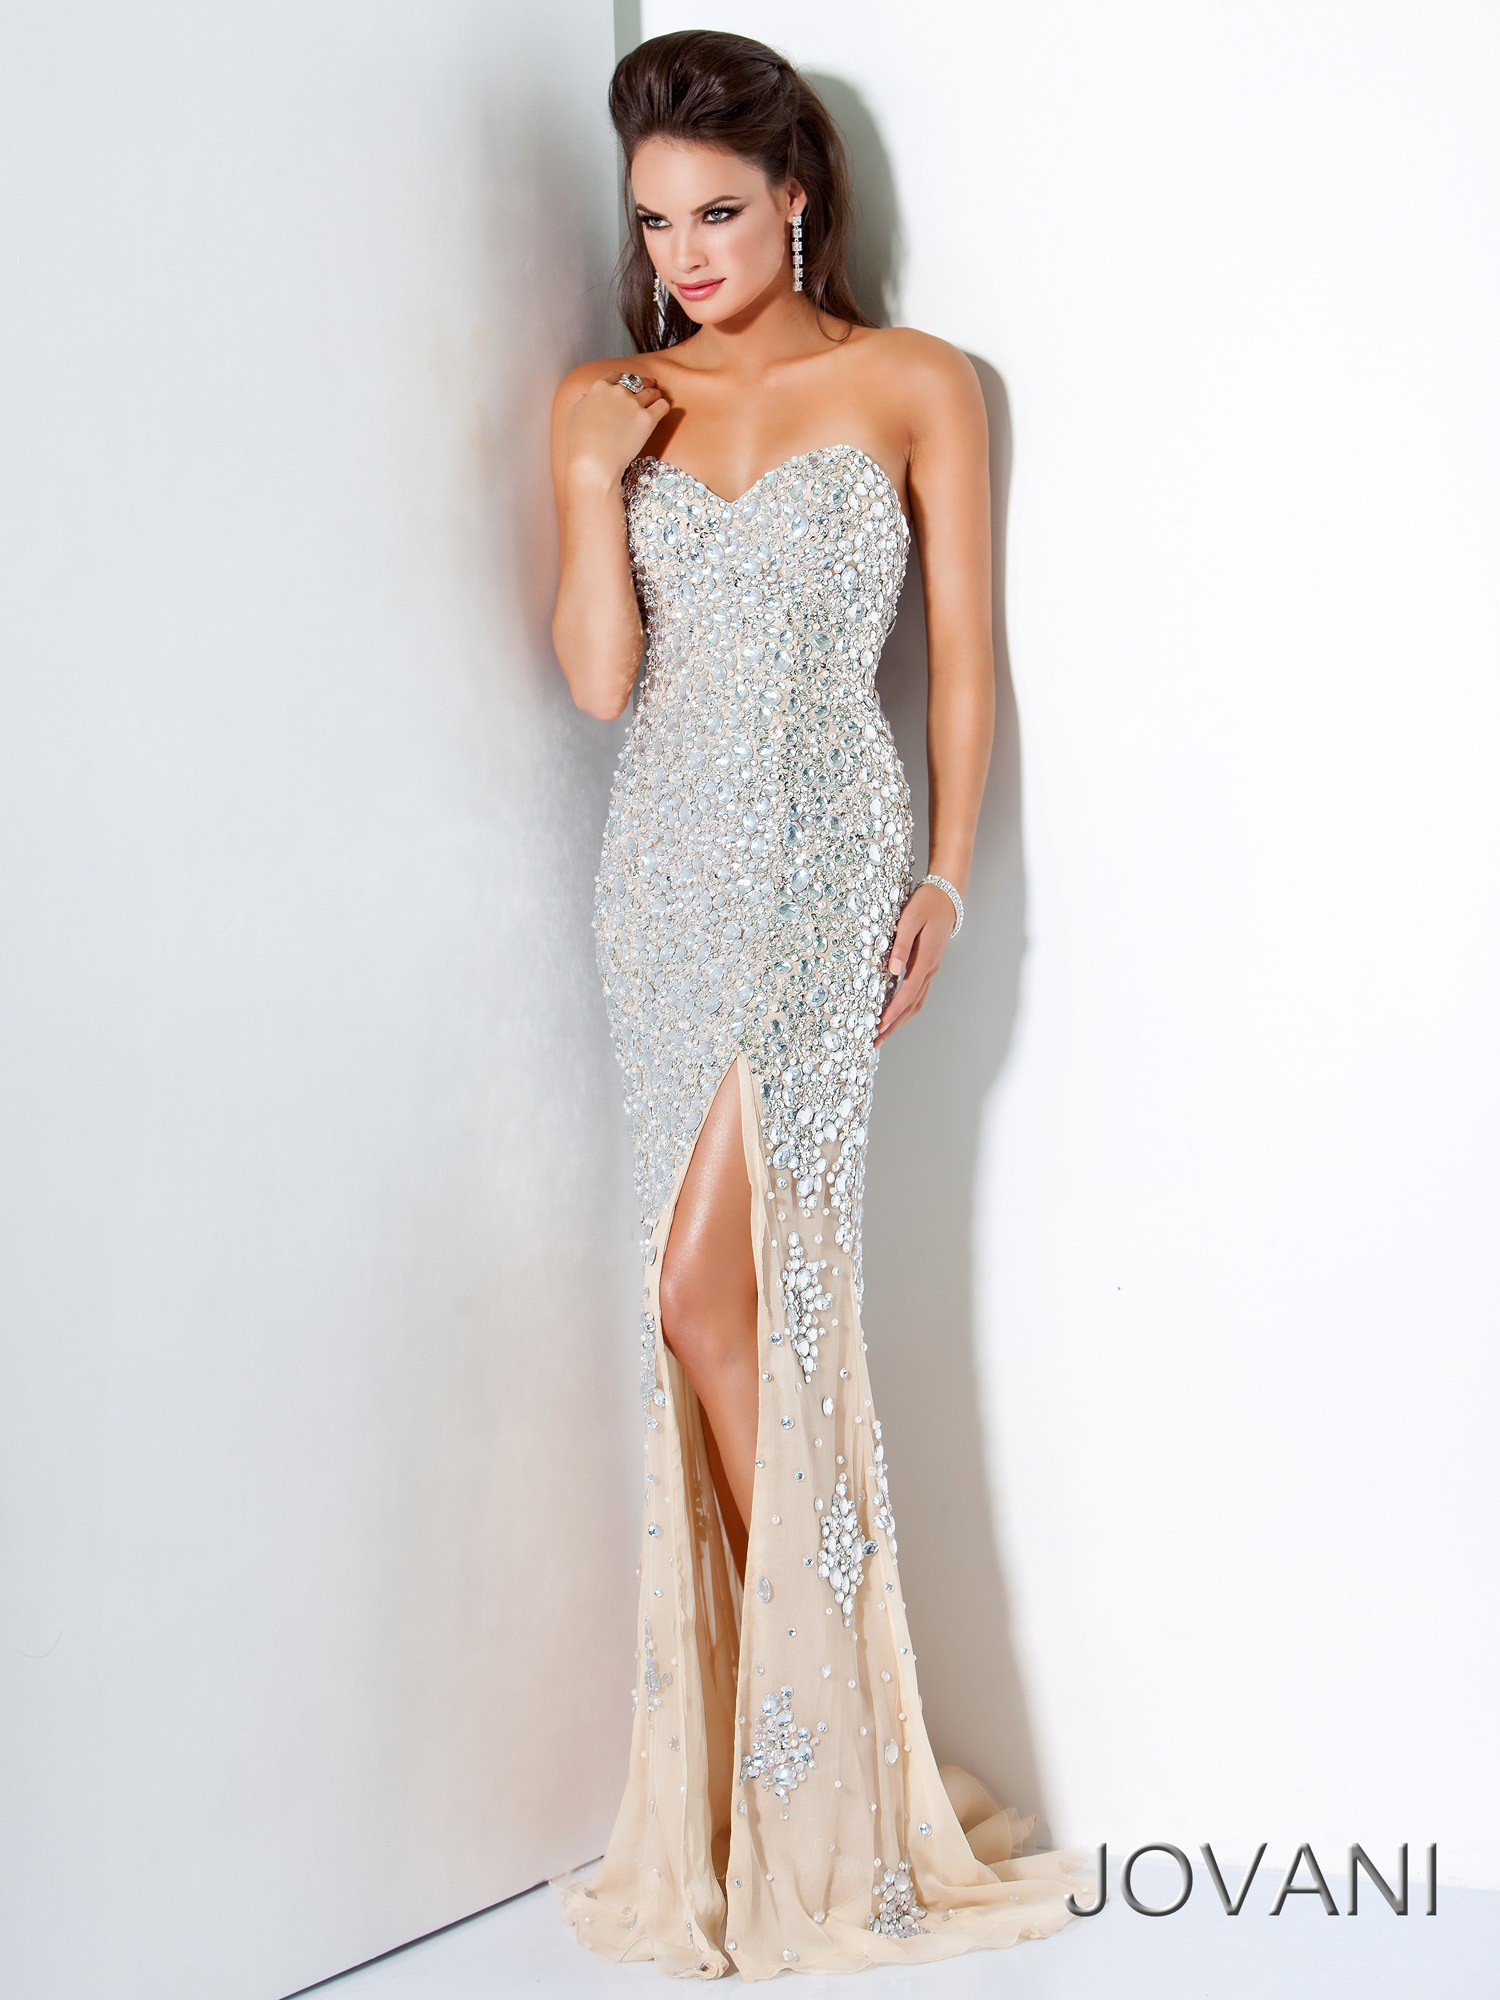 Jovani 4247 - Silver Nude Beaded Strapless Dress - RissyRoos.com